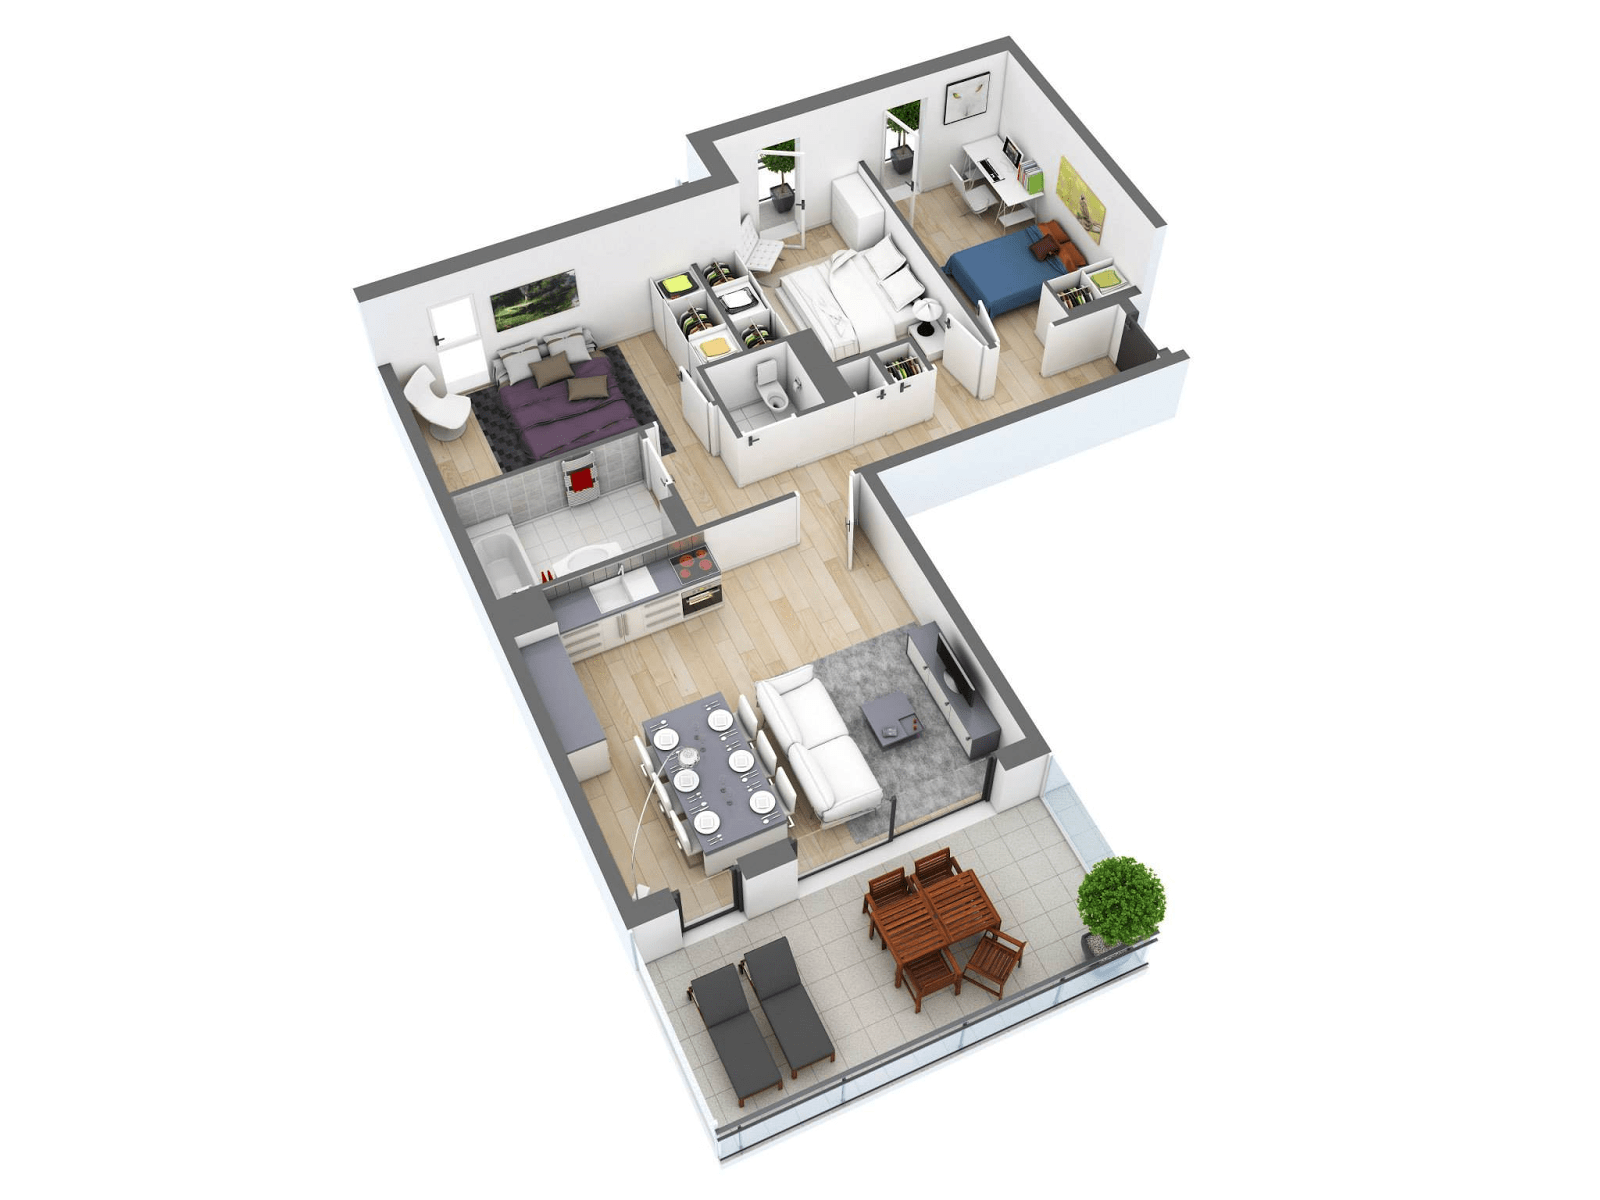 3d Layout House Floor Plans With 3 Bedroom And 2 Bathroom (Image 5 of 11)